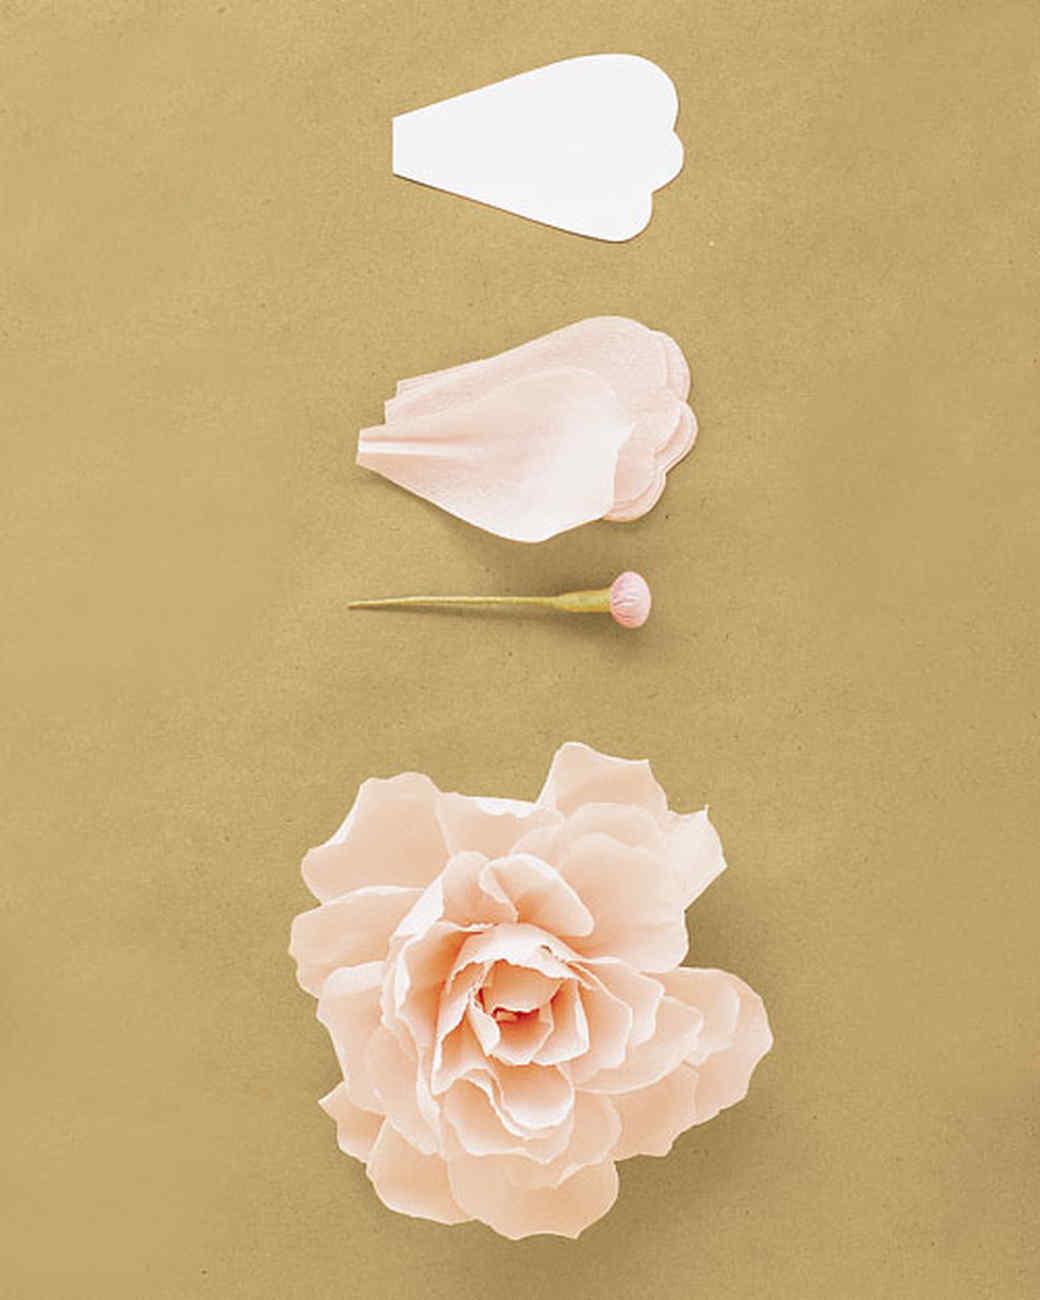 paper flower templates martha stewart - how to make crepe paper flowers martha stewart